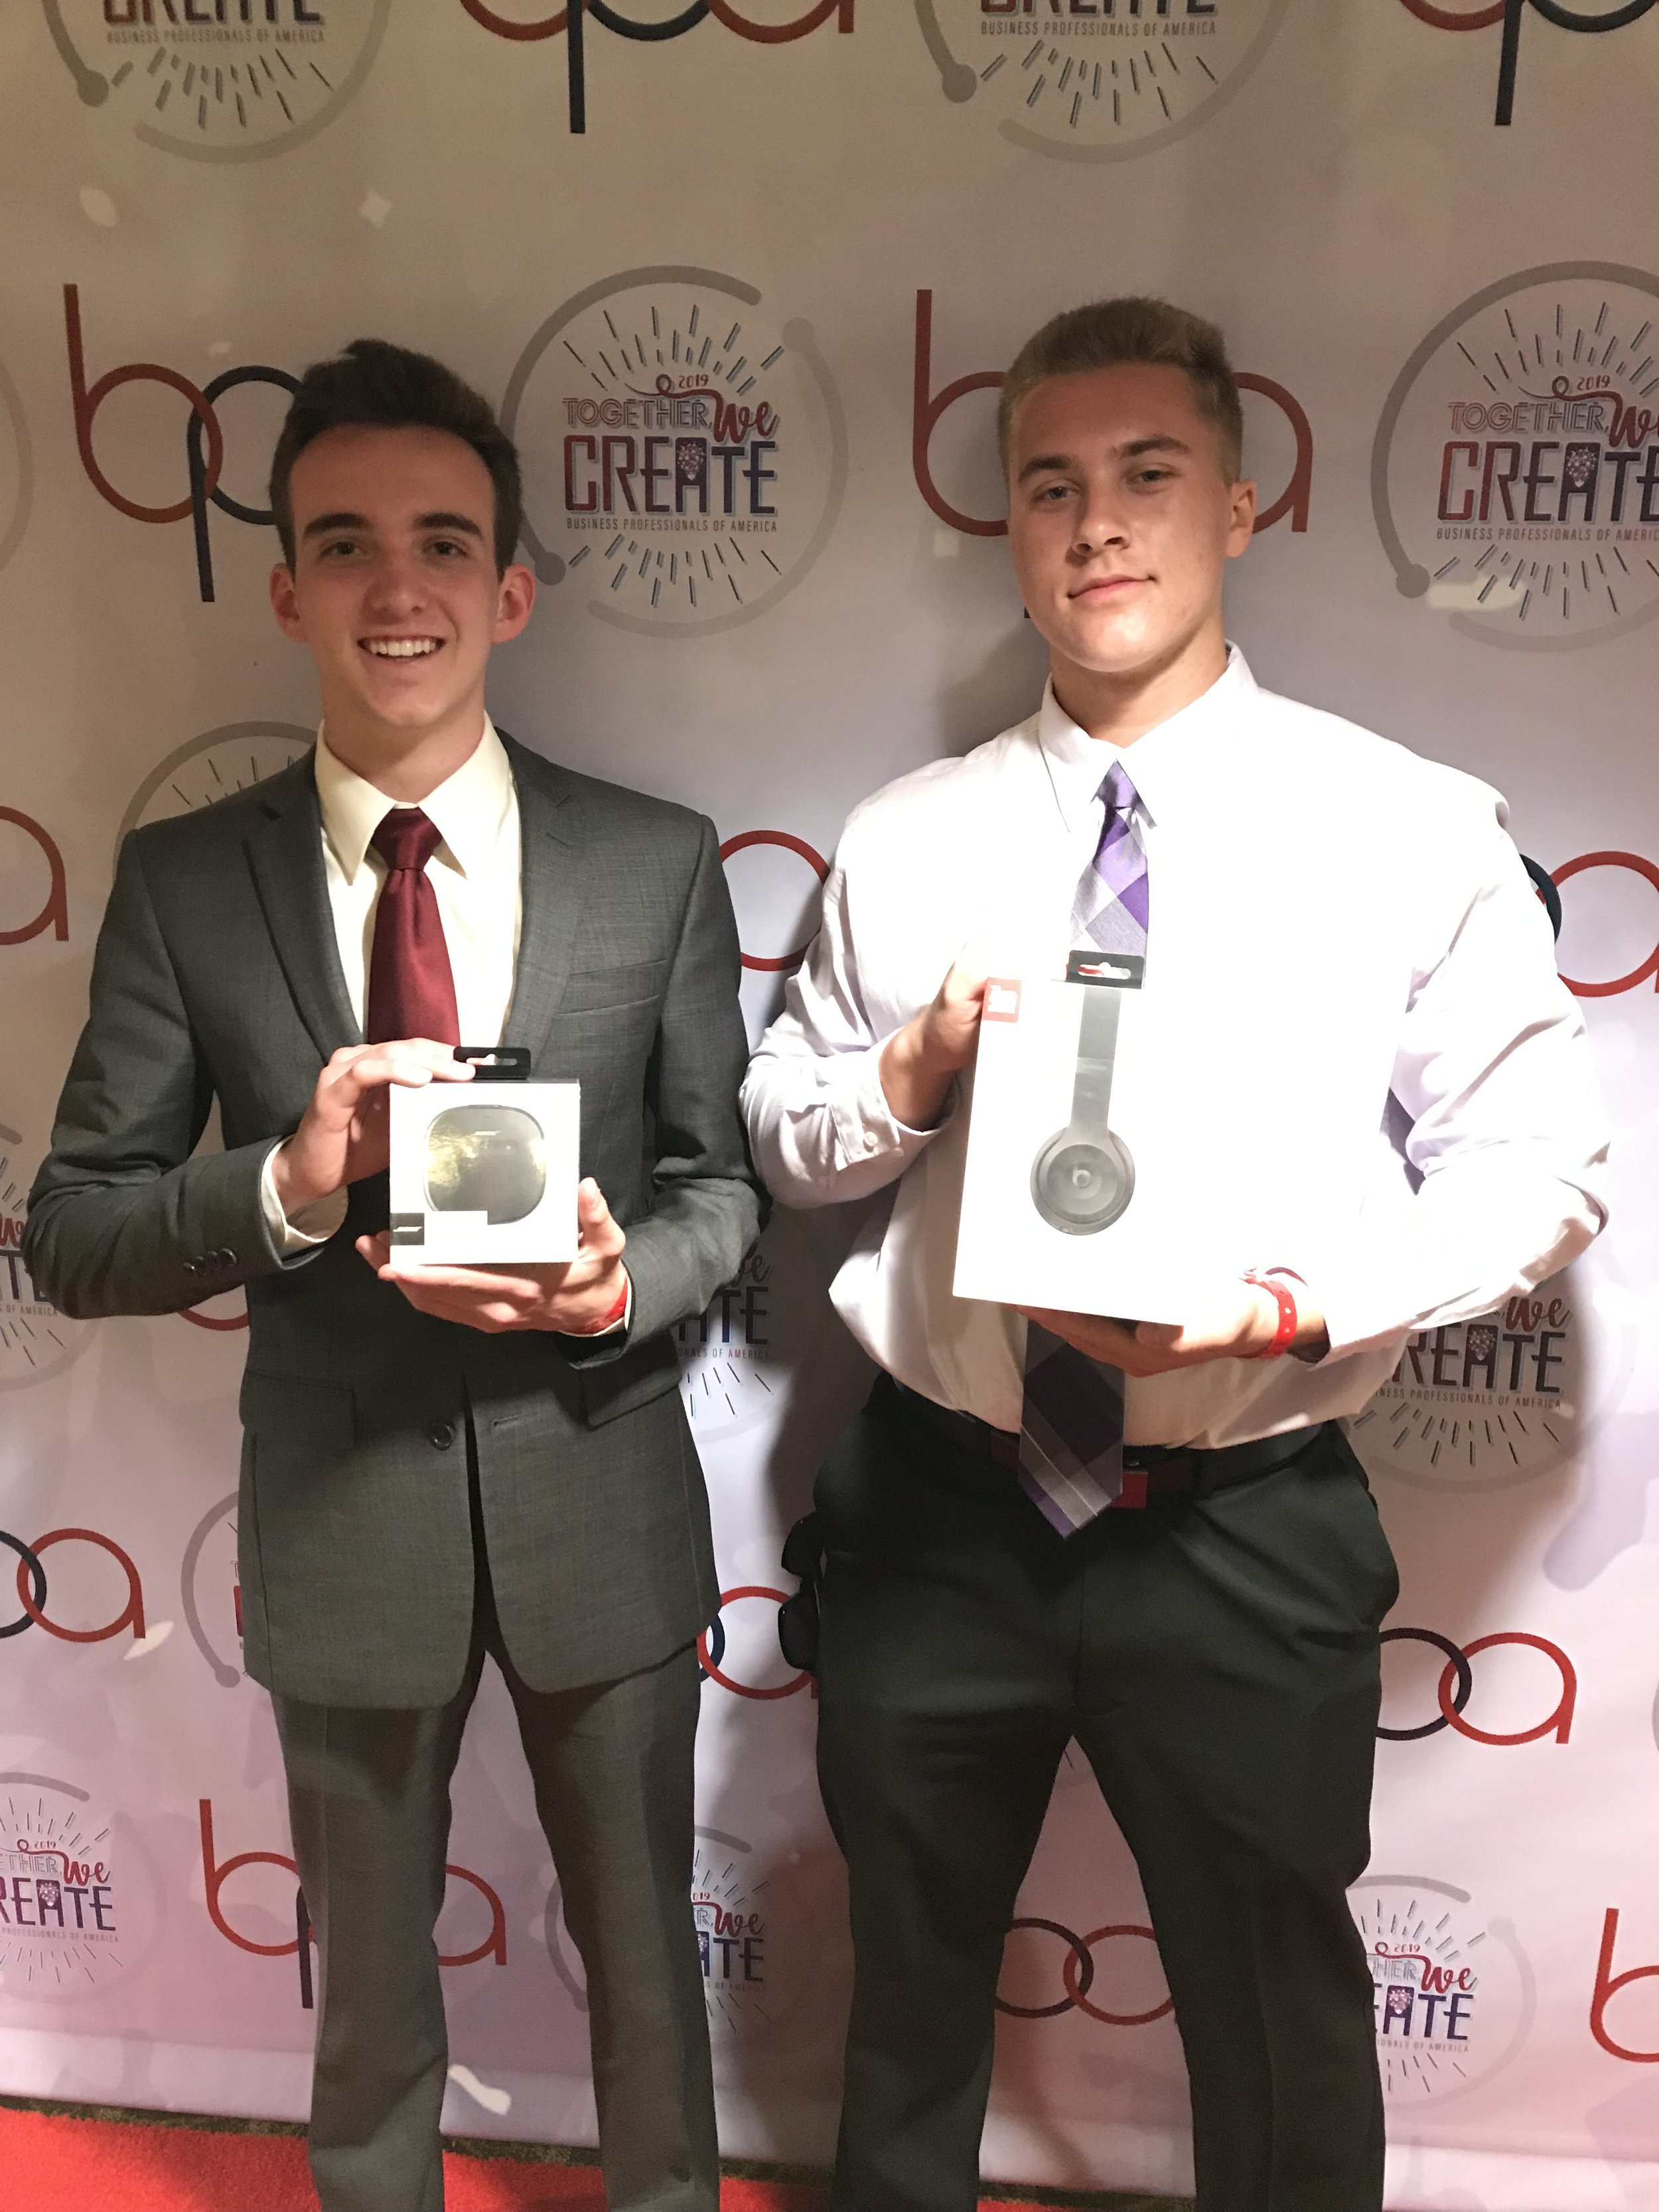 Matthew Miller and Nicholas Browning, Chippewa Valley HS, displaying their national prizes (2019 NLC)